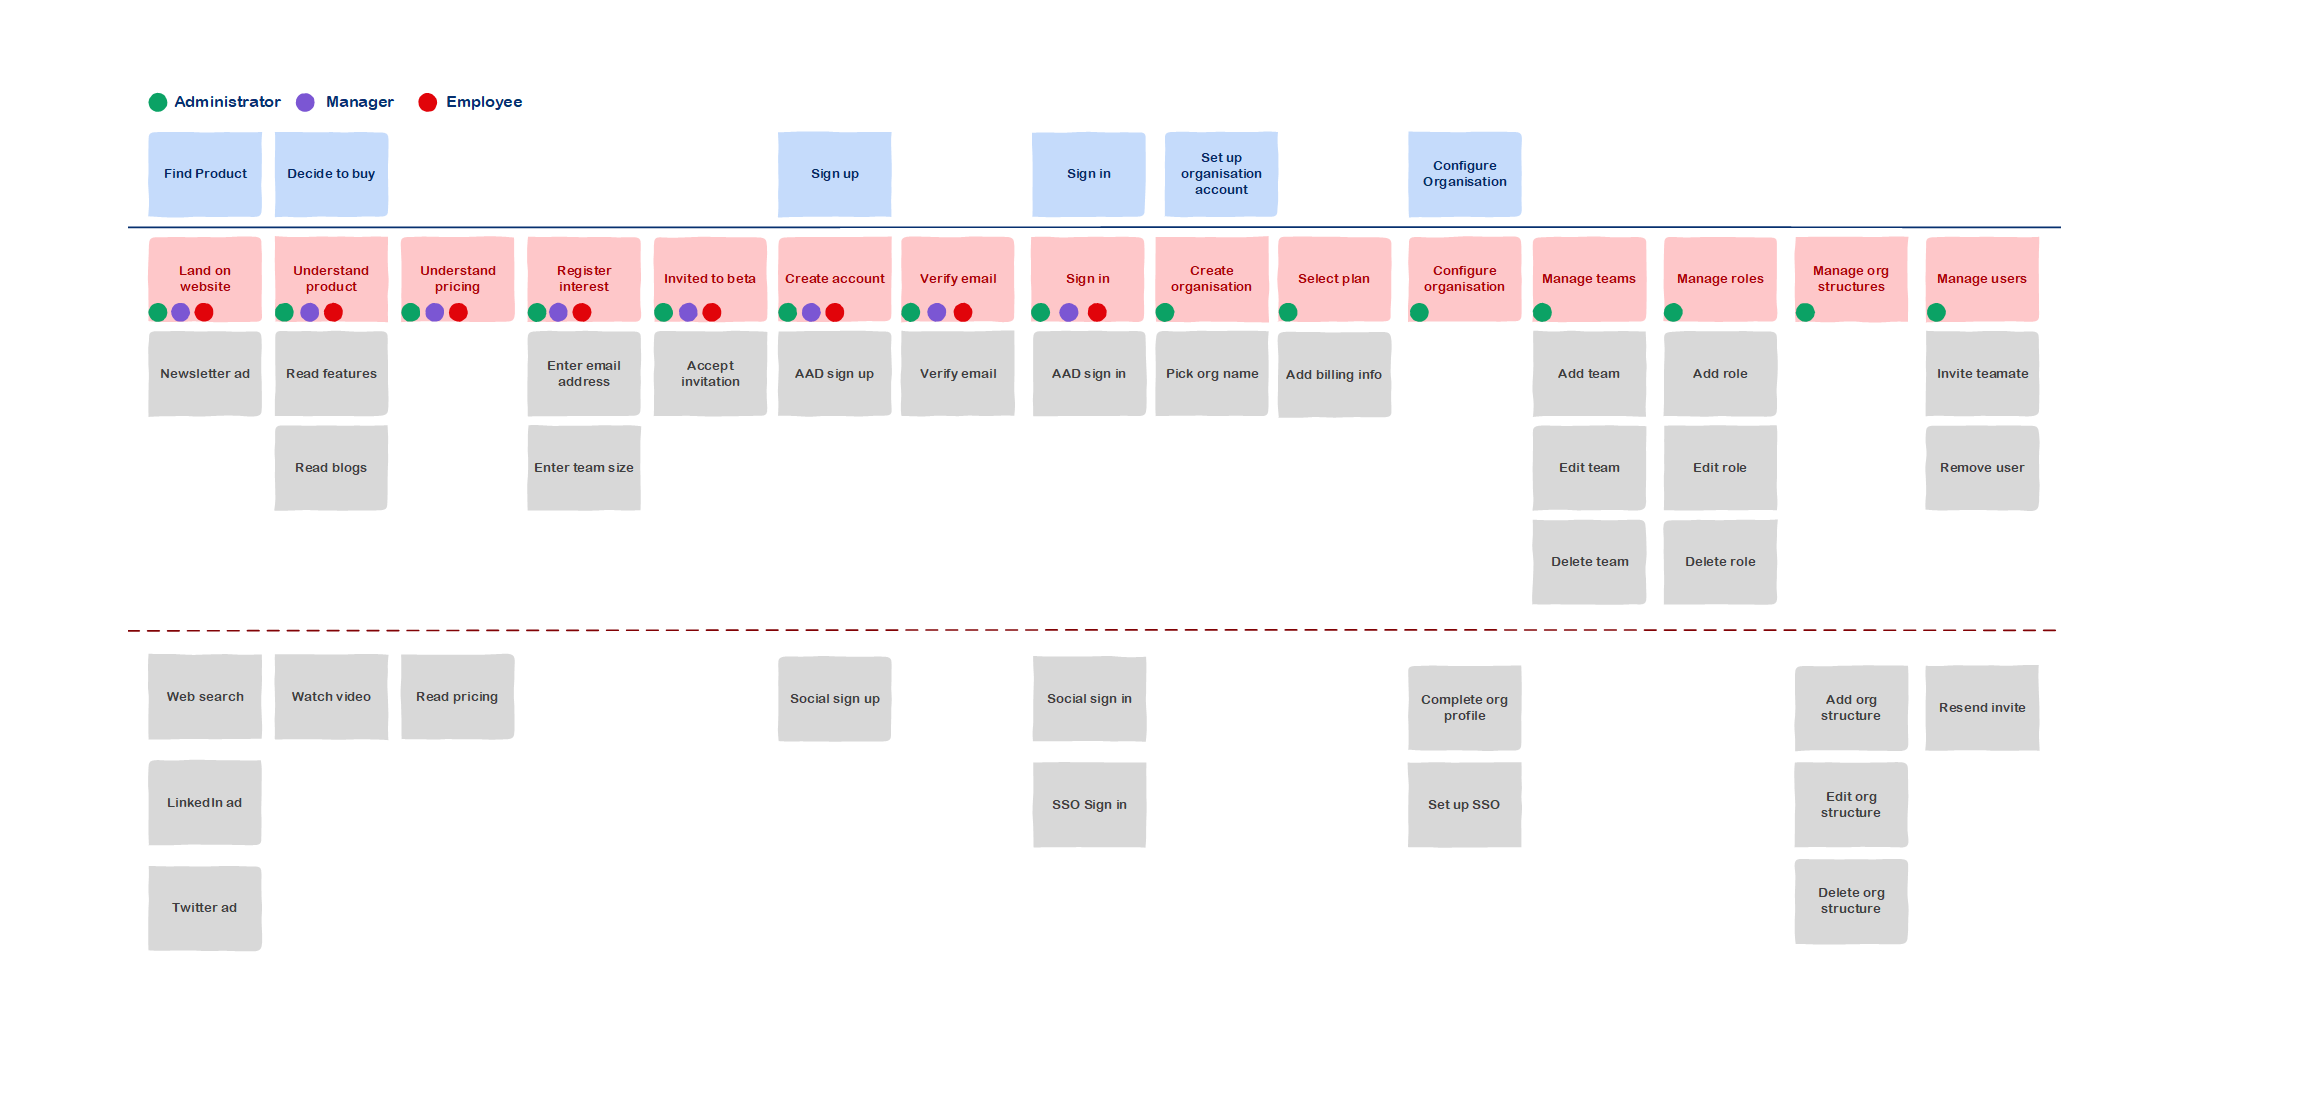 Showing first few sections of the story map. Features colour coded by users - administrators/managers/members.